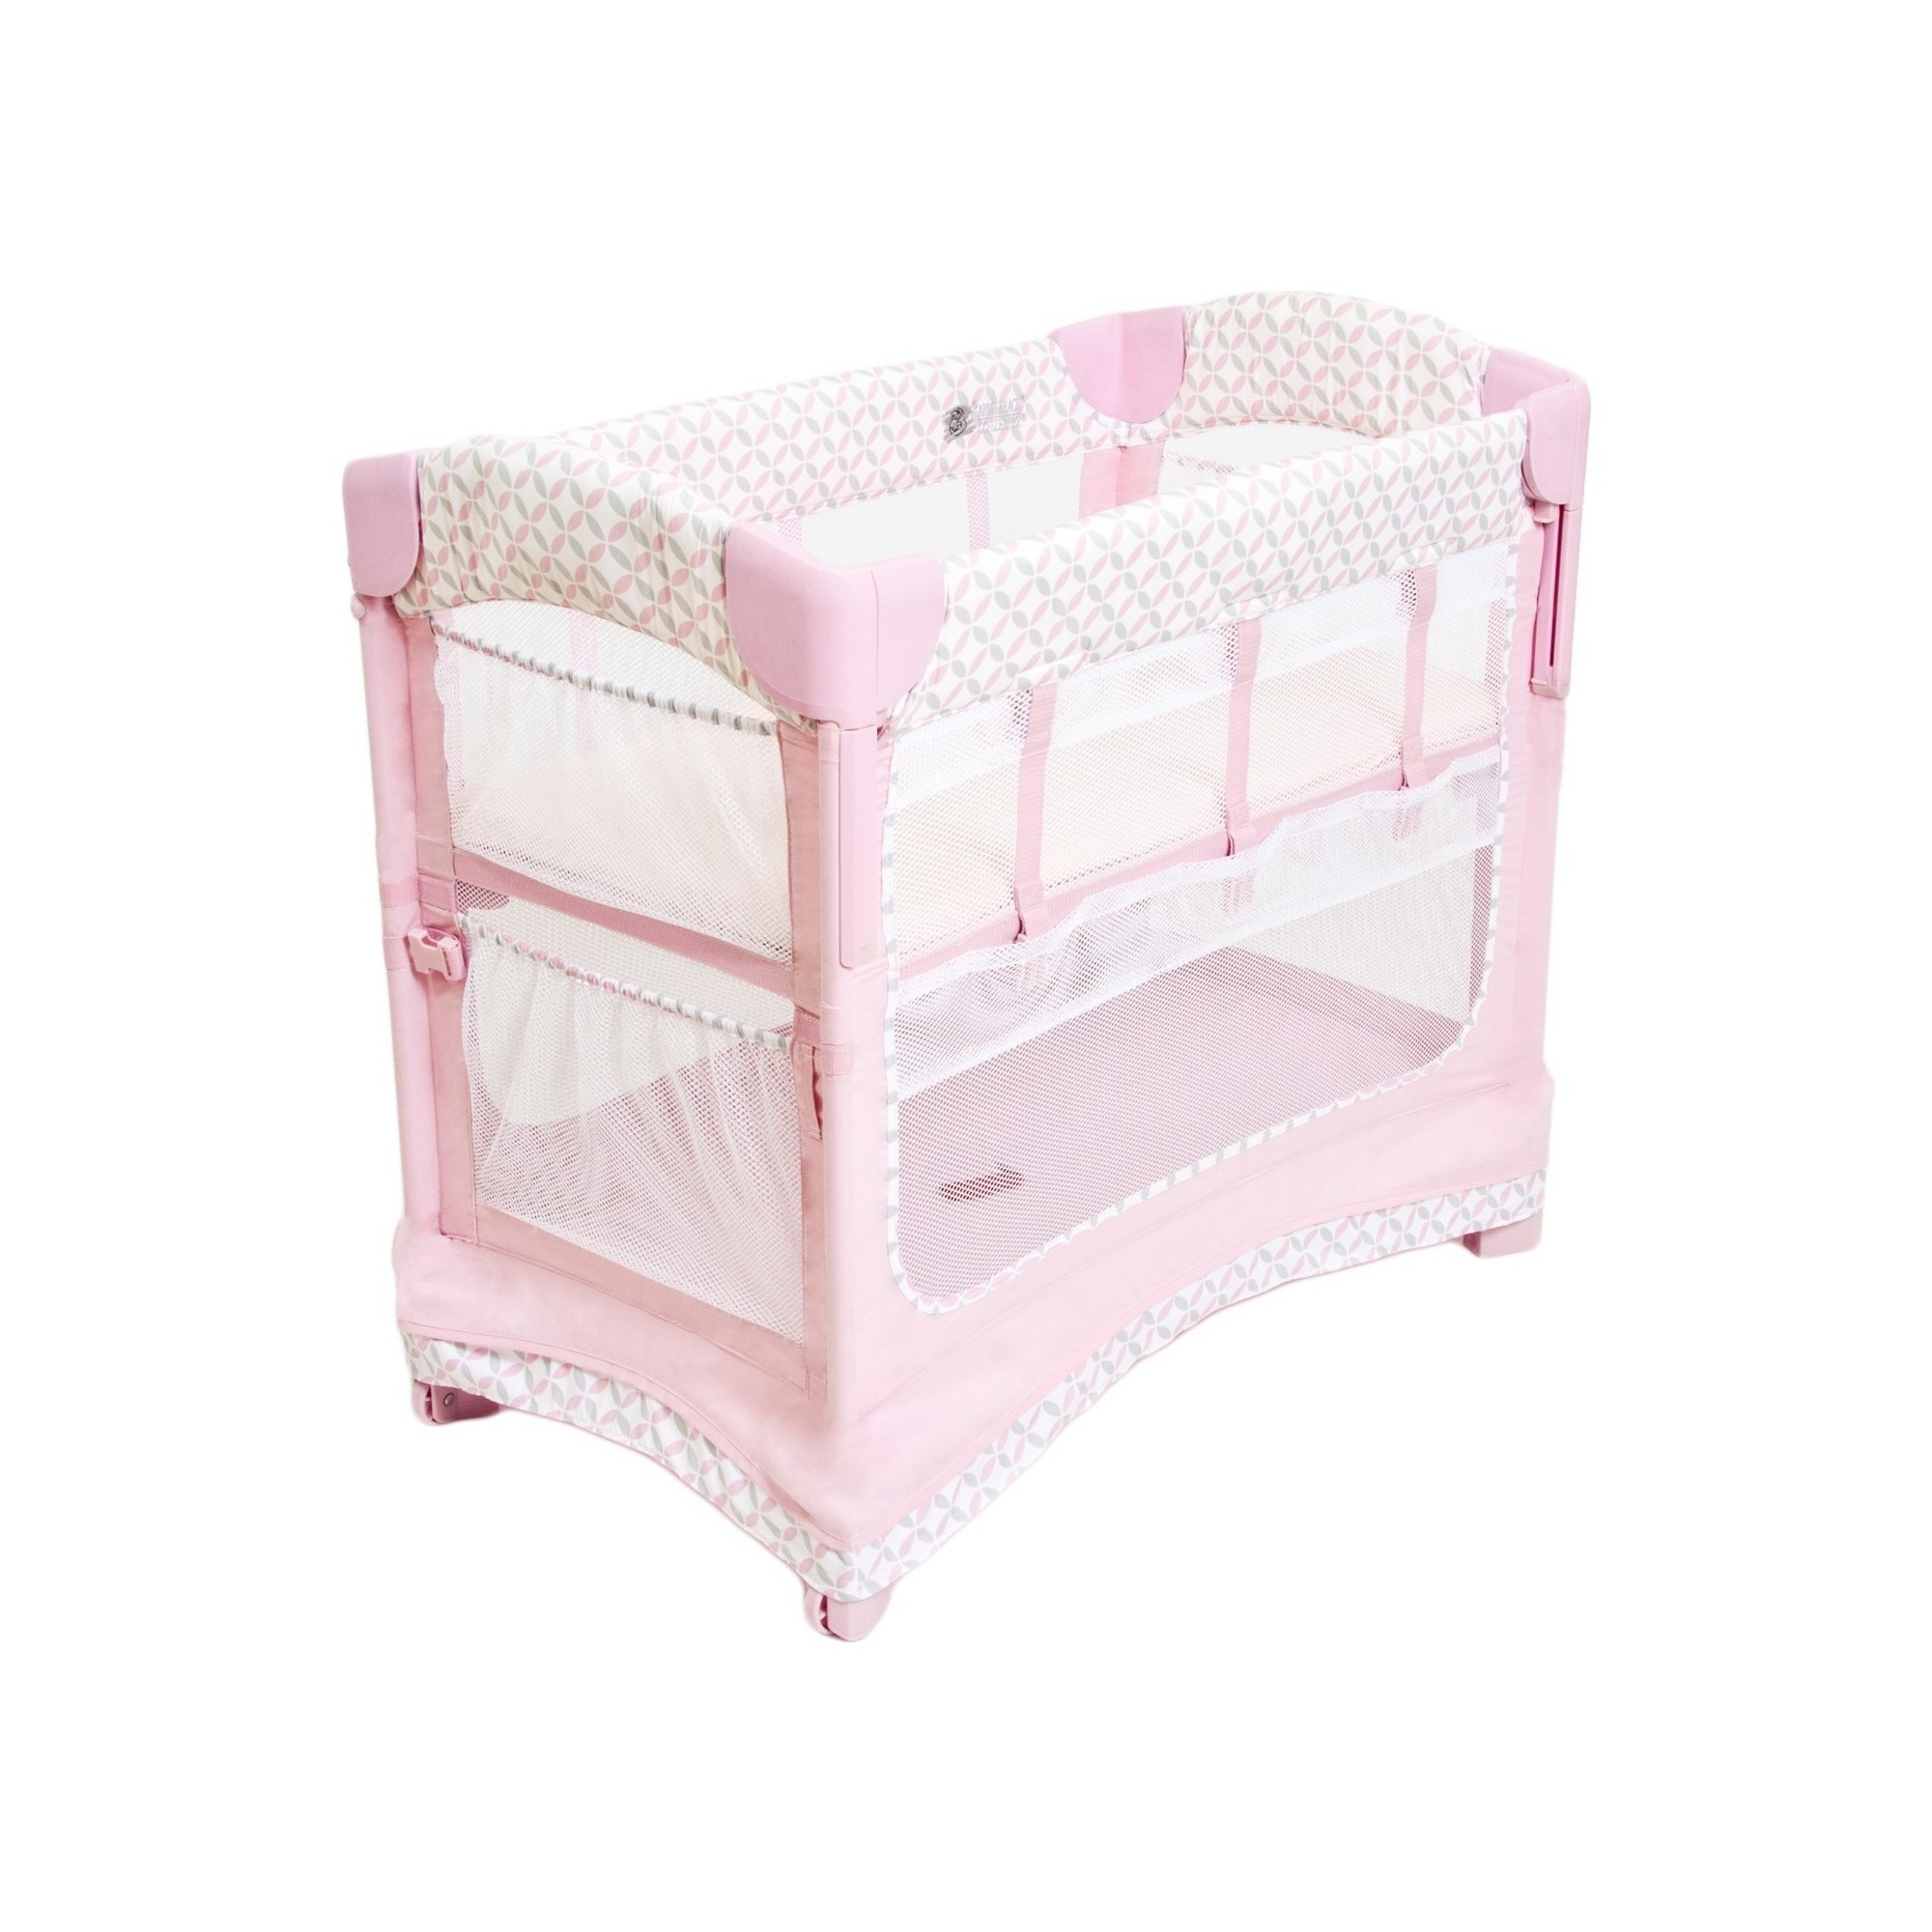 Arm's Reach CoSleeper Bedside Sleeper Coterie, Pink